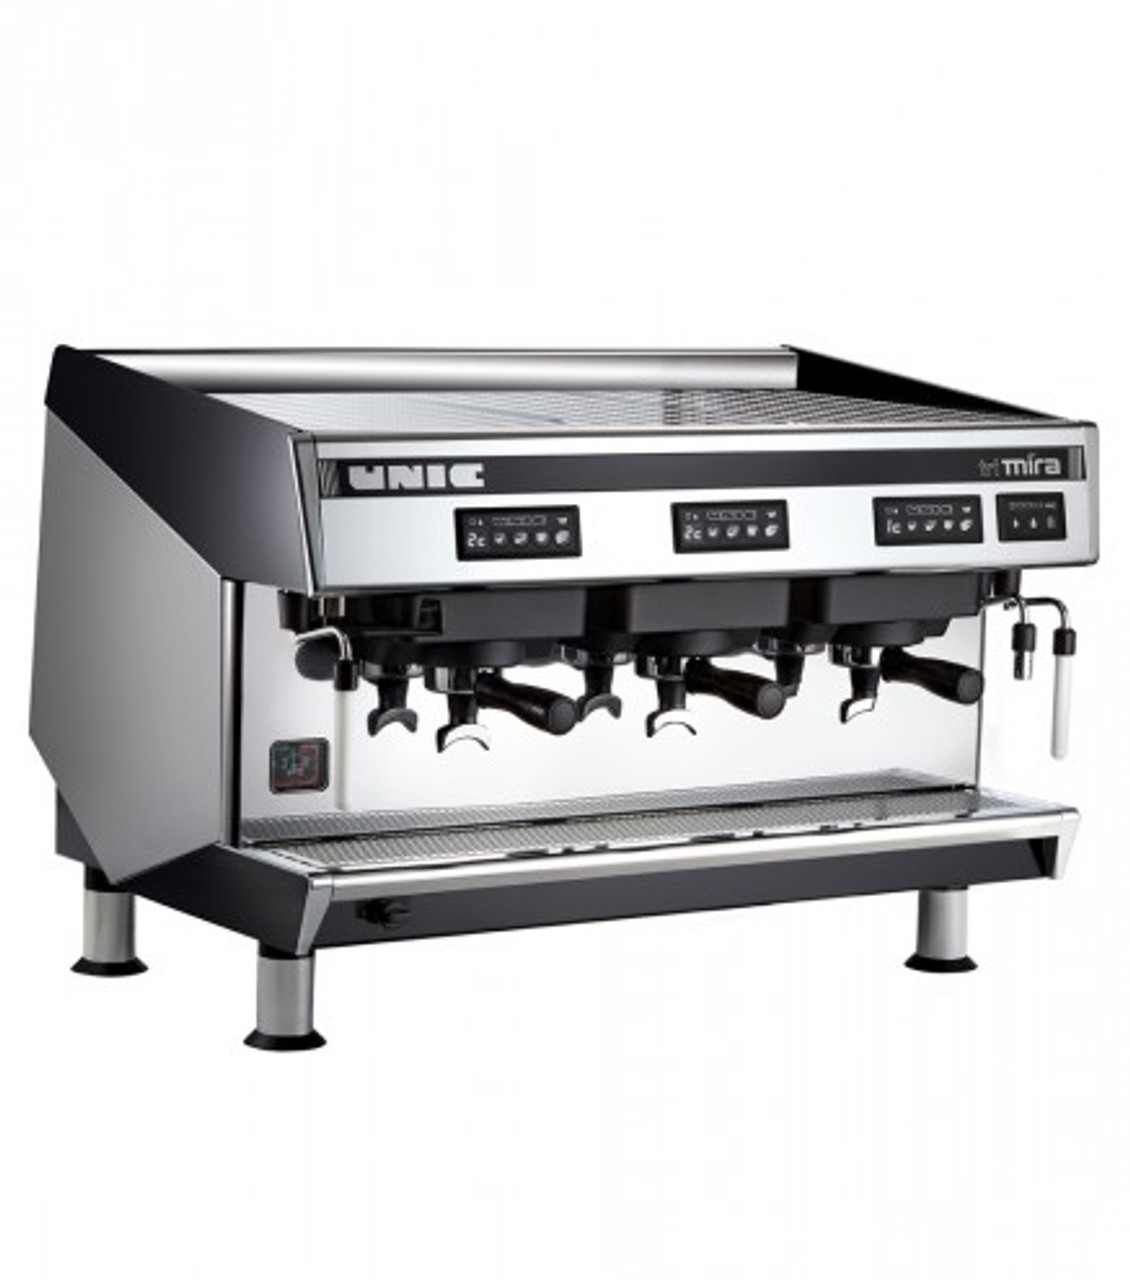 Unic Tri Mira Volumetric Espresso Machine